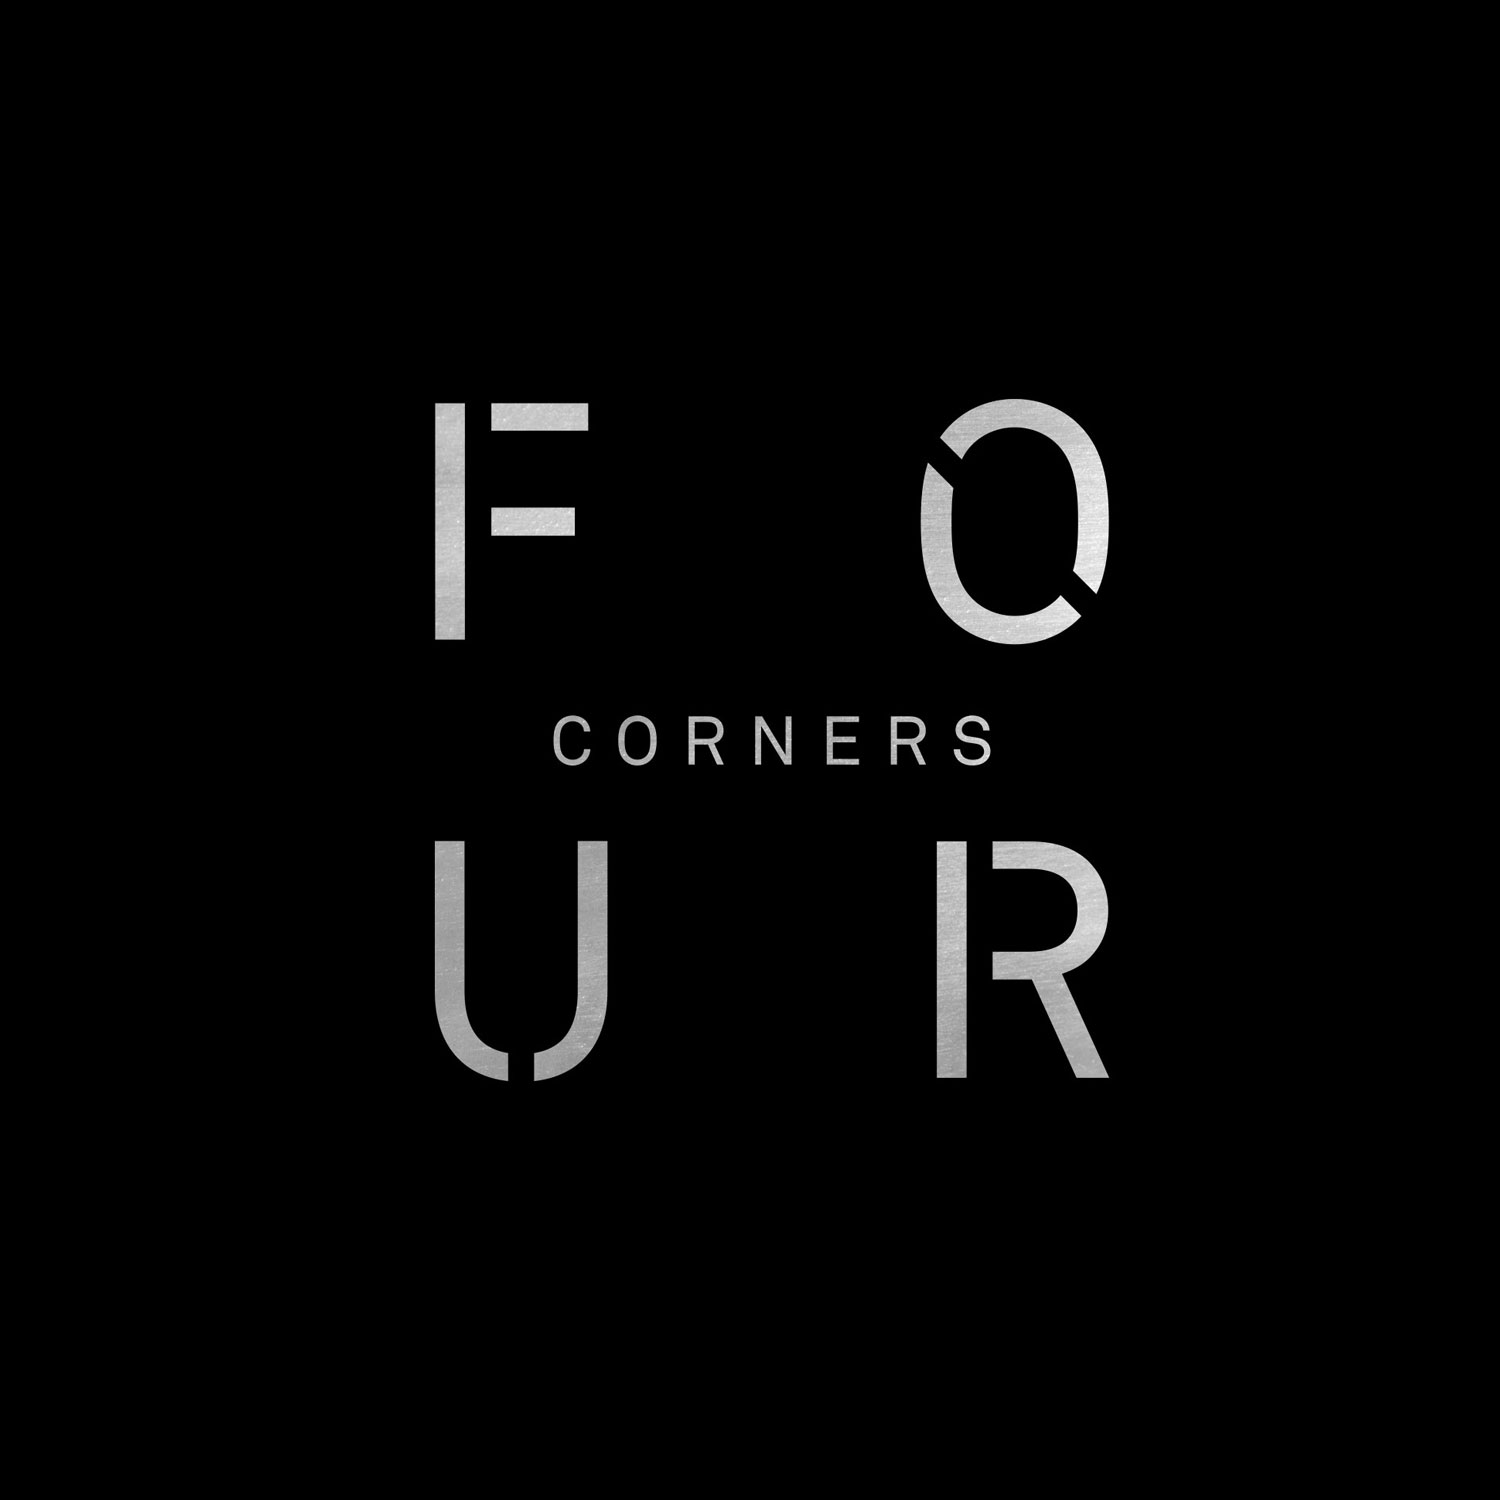 Restaurant branding for Newcastle United FC Four Corners by Altogether Creative.